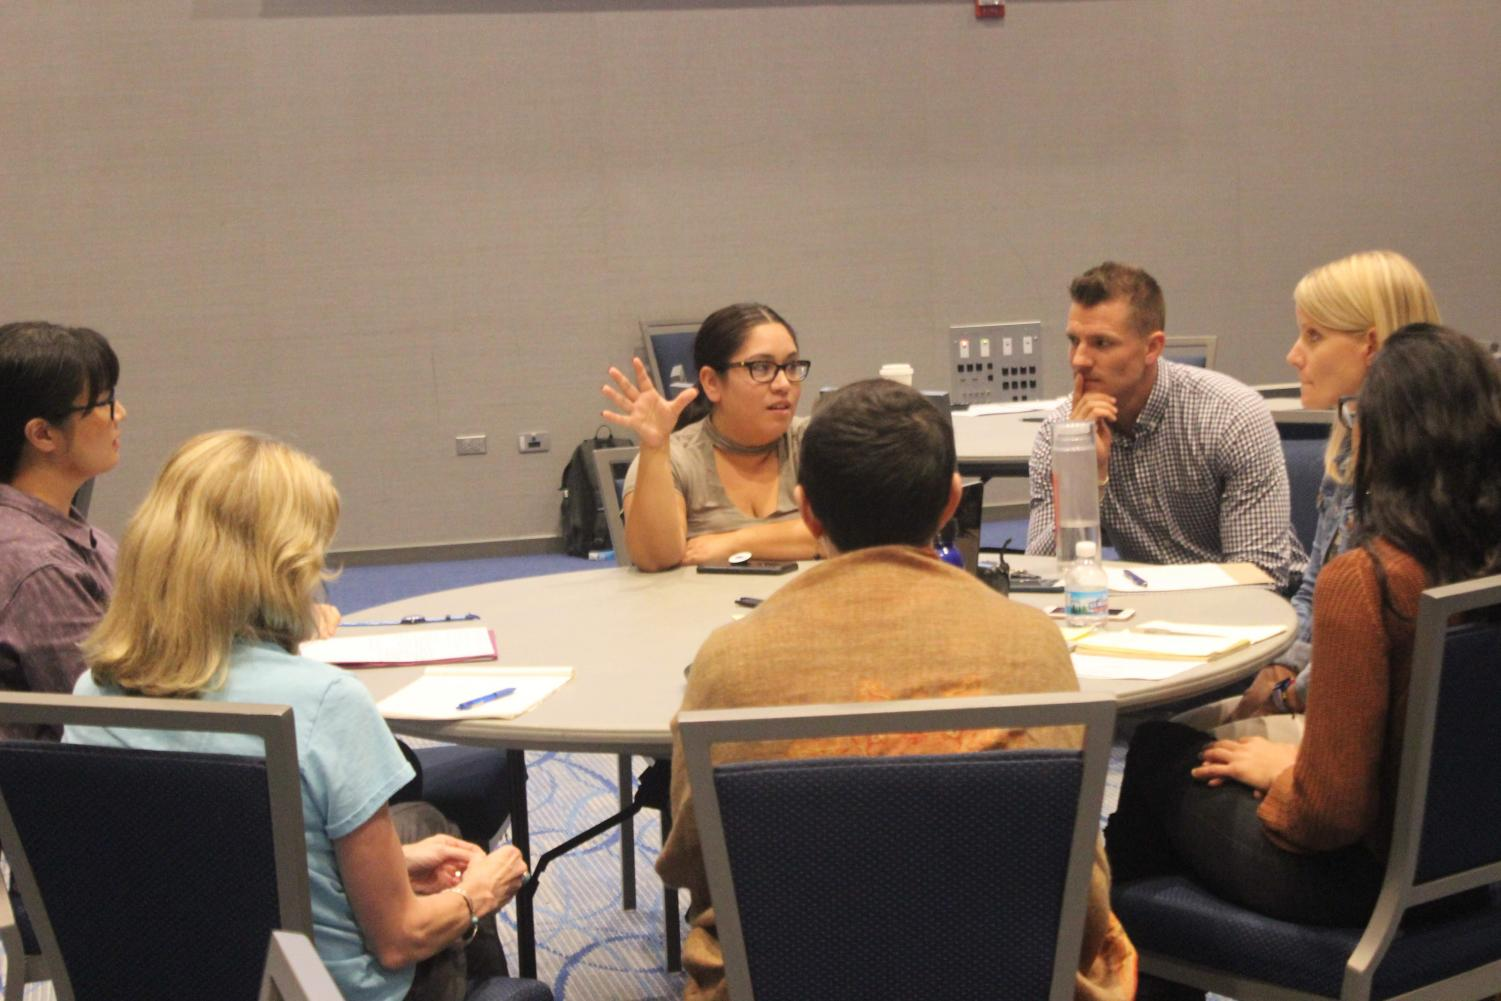 Participants discuss the challenges and rewards of conflict resolution.| Photo by Frannie Mendoza